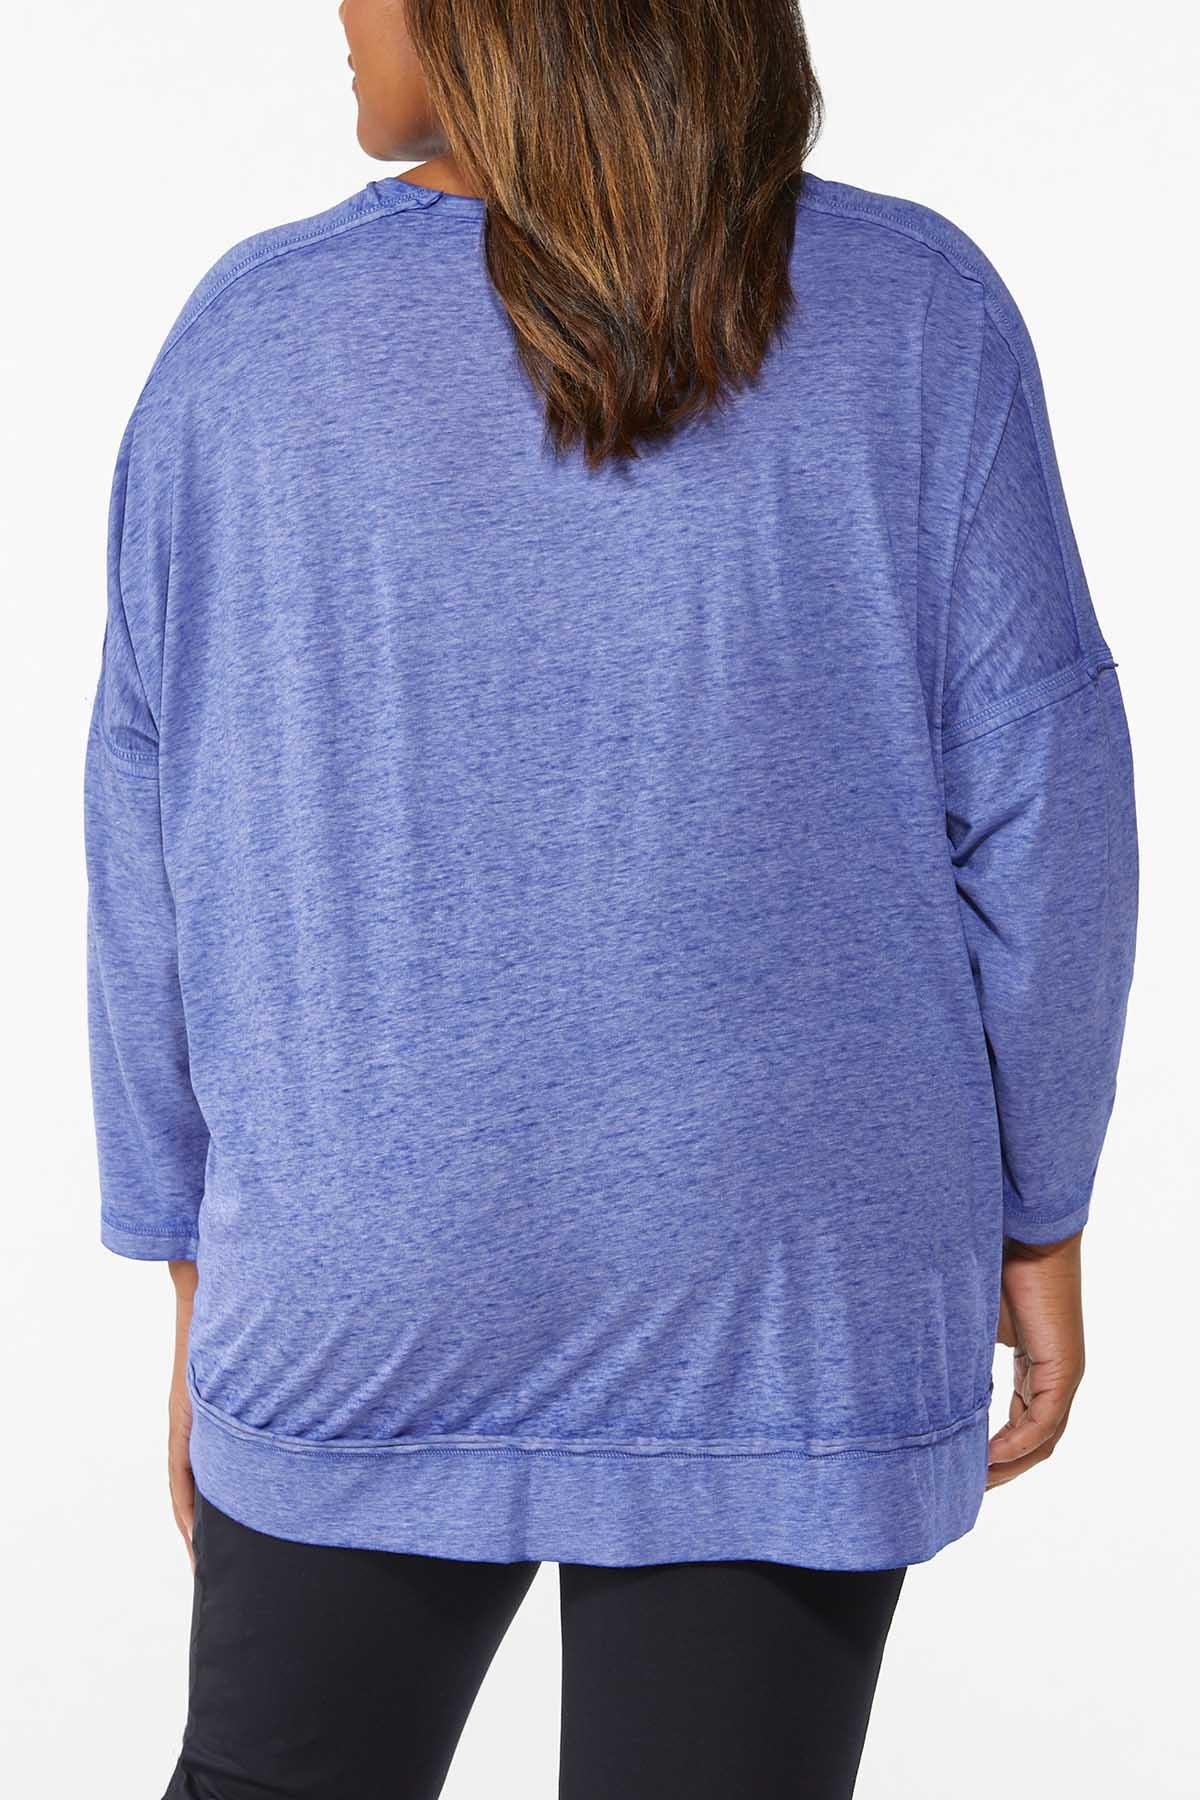 Plus Size Relaxed Active Top (Item #44697151)